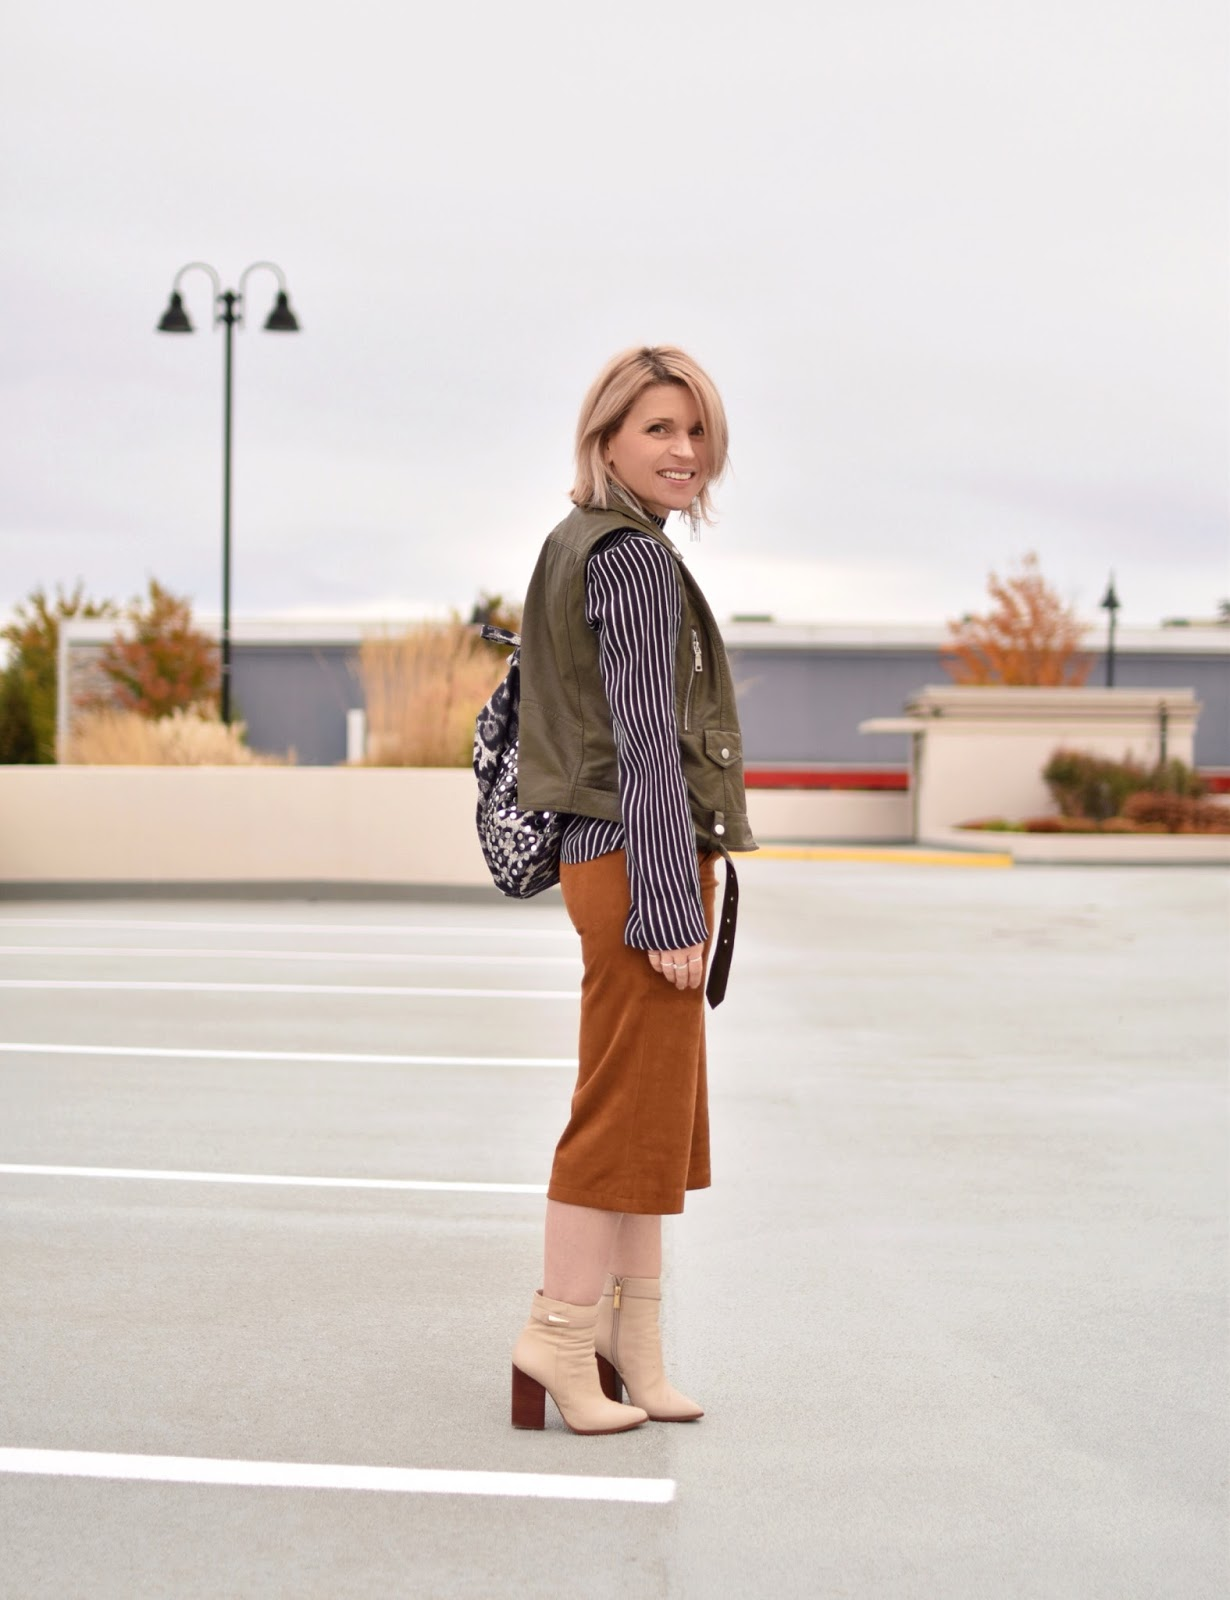 Outfit inspiration c/o Monika Faulkner - striped blouse, faux-suede culottes, moto vest, and ivory booties